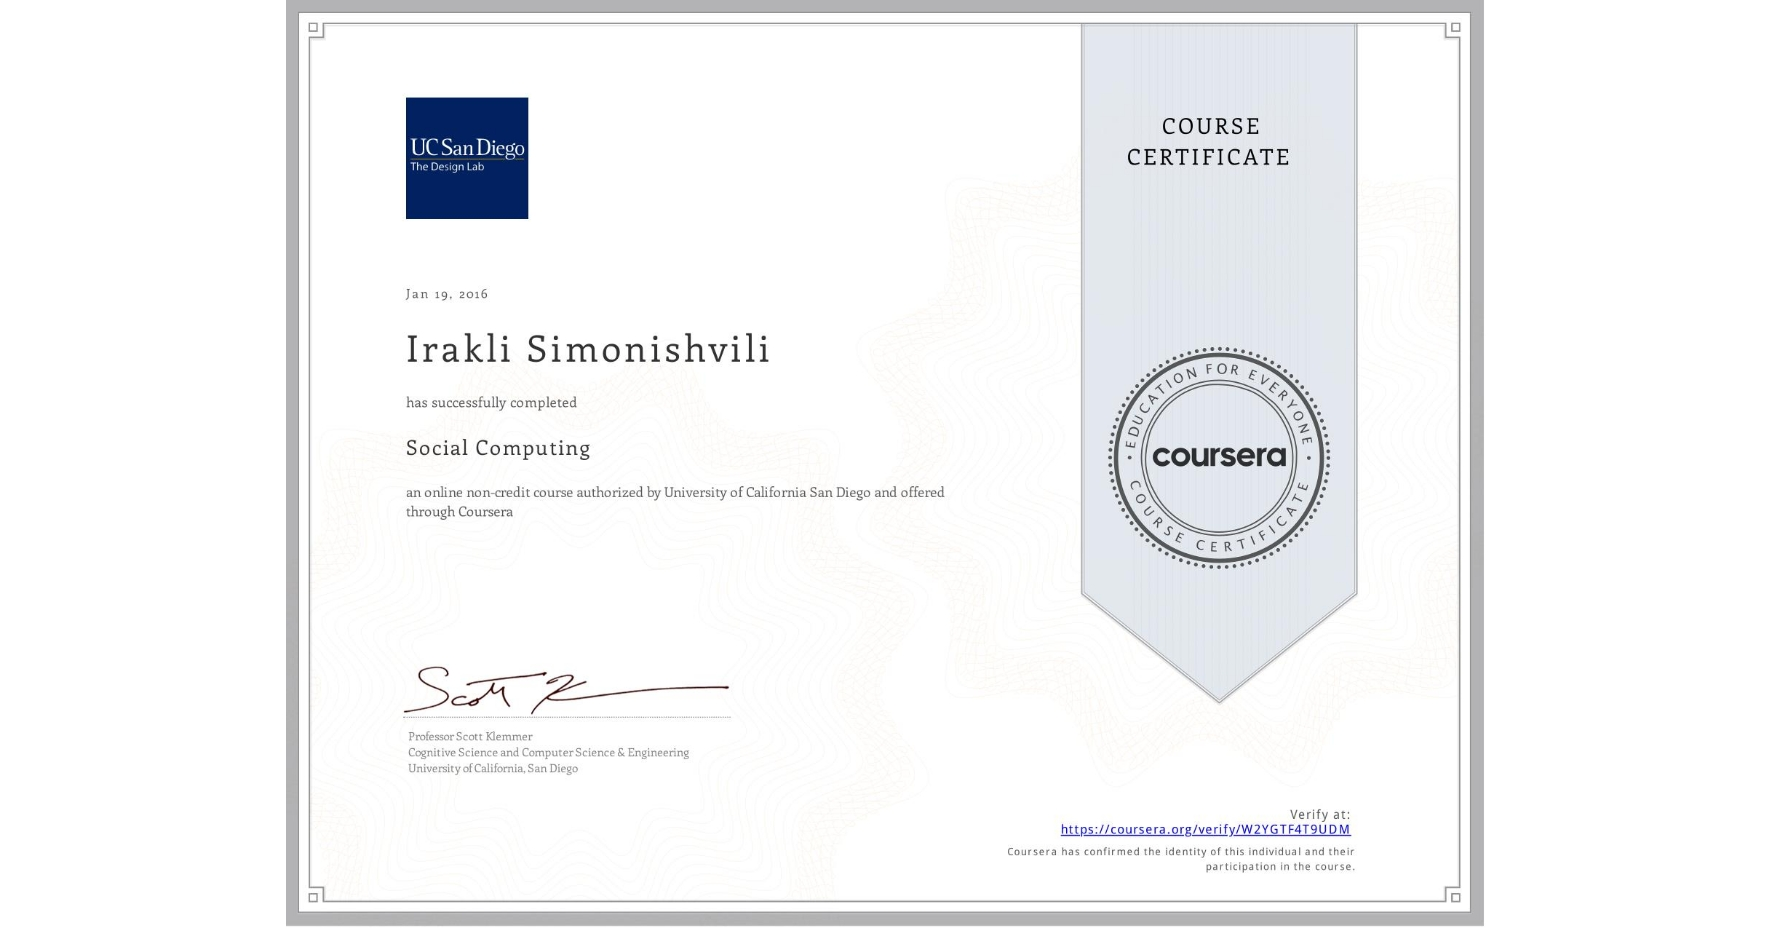 View certificate for Irakli Simonishvili, Social Computing, an online non-credit course authorized by University of California San Diego and offered through Coursera